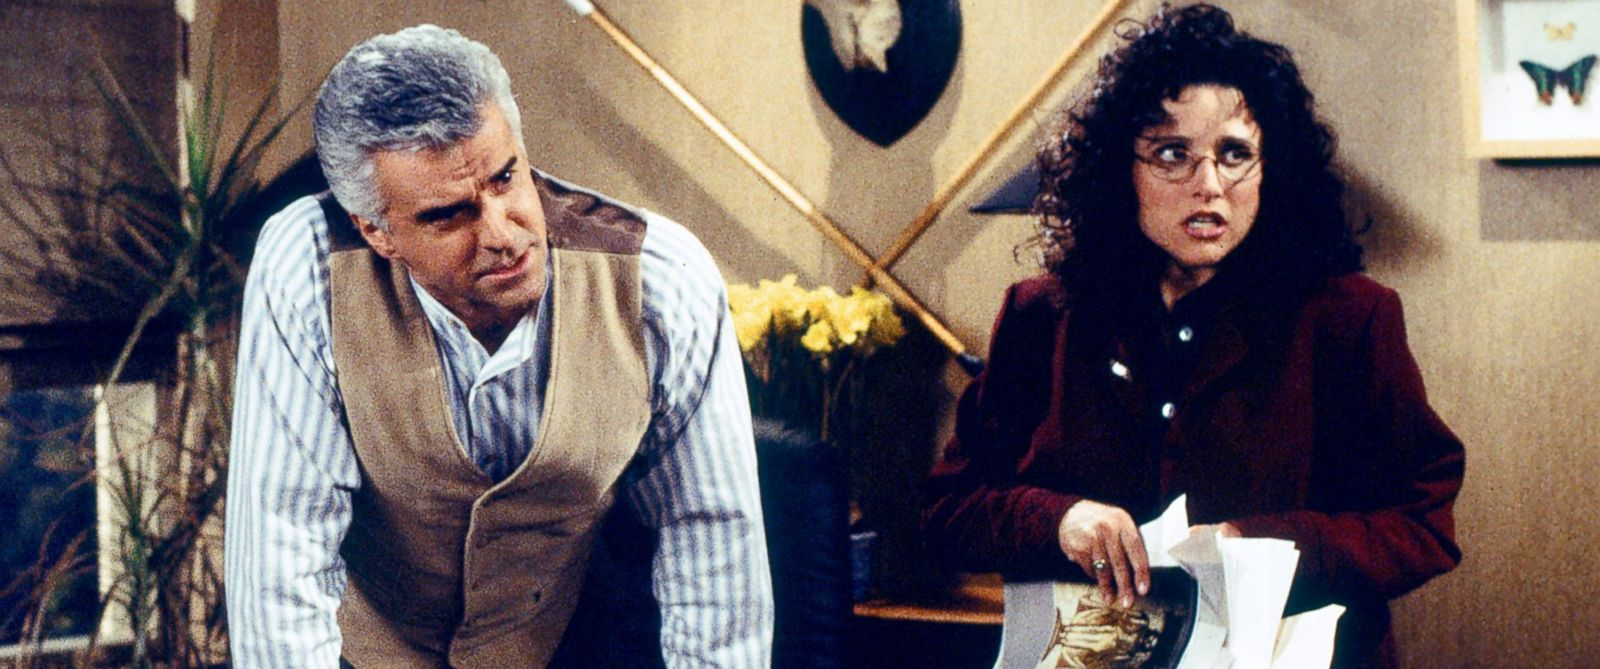 PHOTO: John OHurley as J. Peterman and Julia Louis-Dreyfus as Elaine Benes in a scene from Seinfeld.